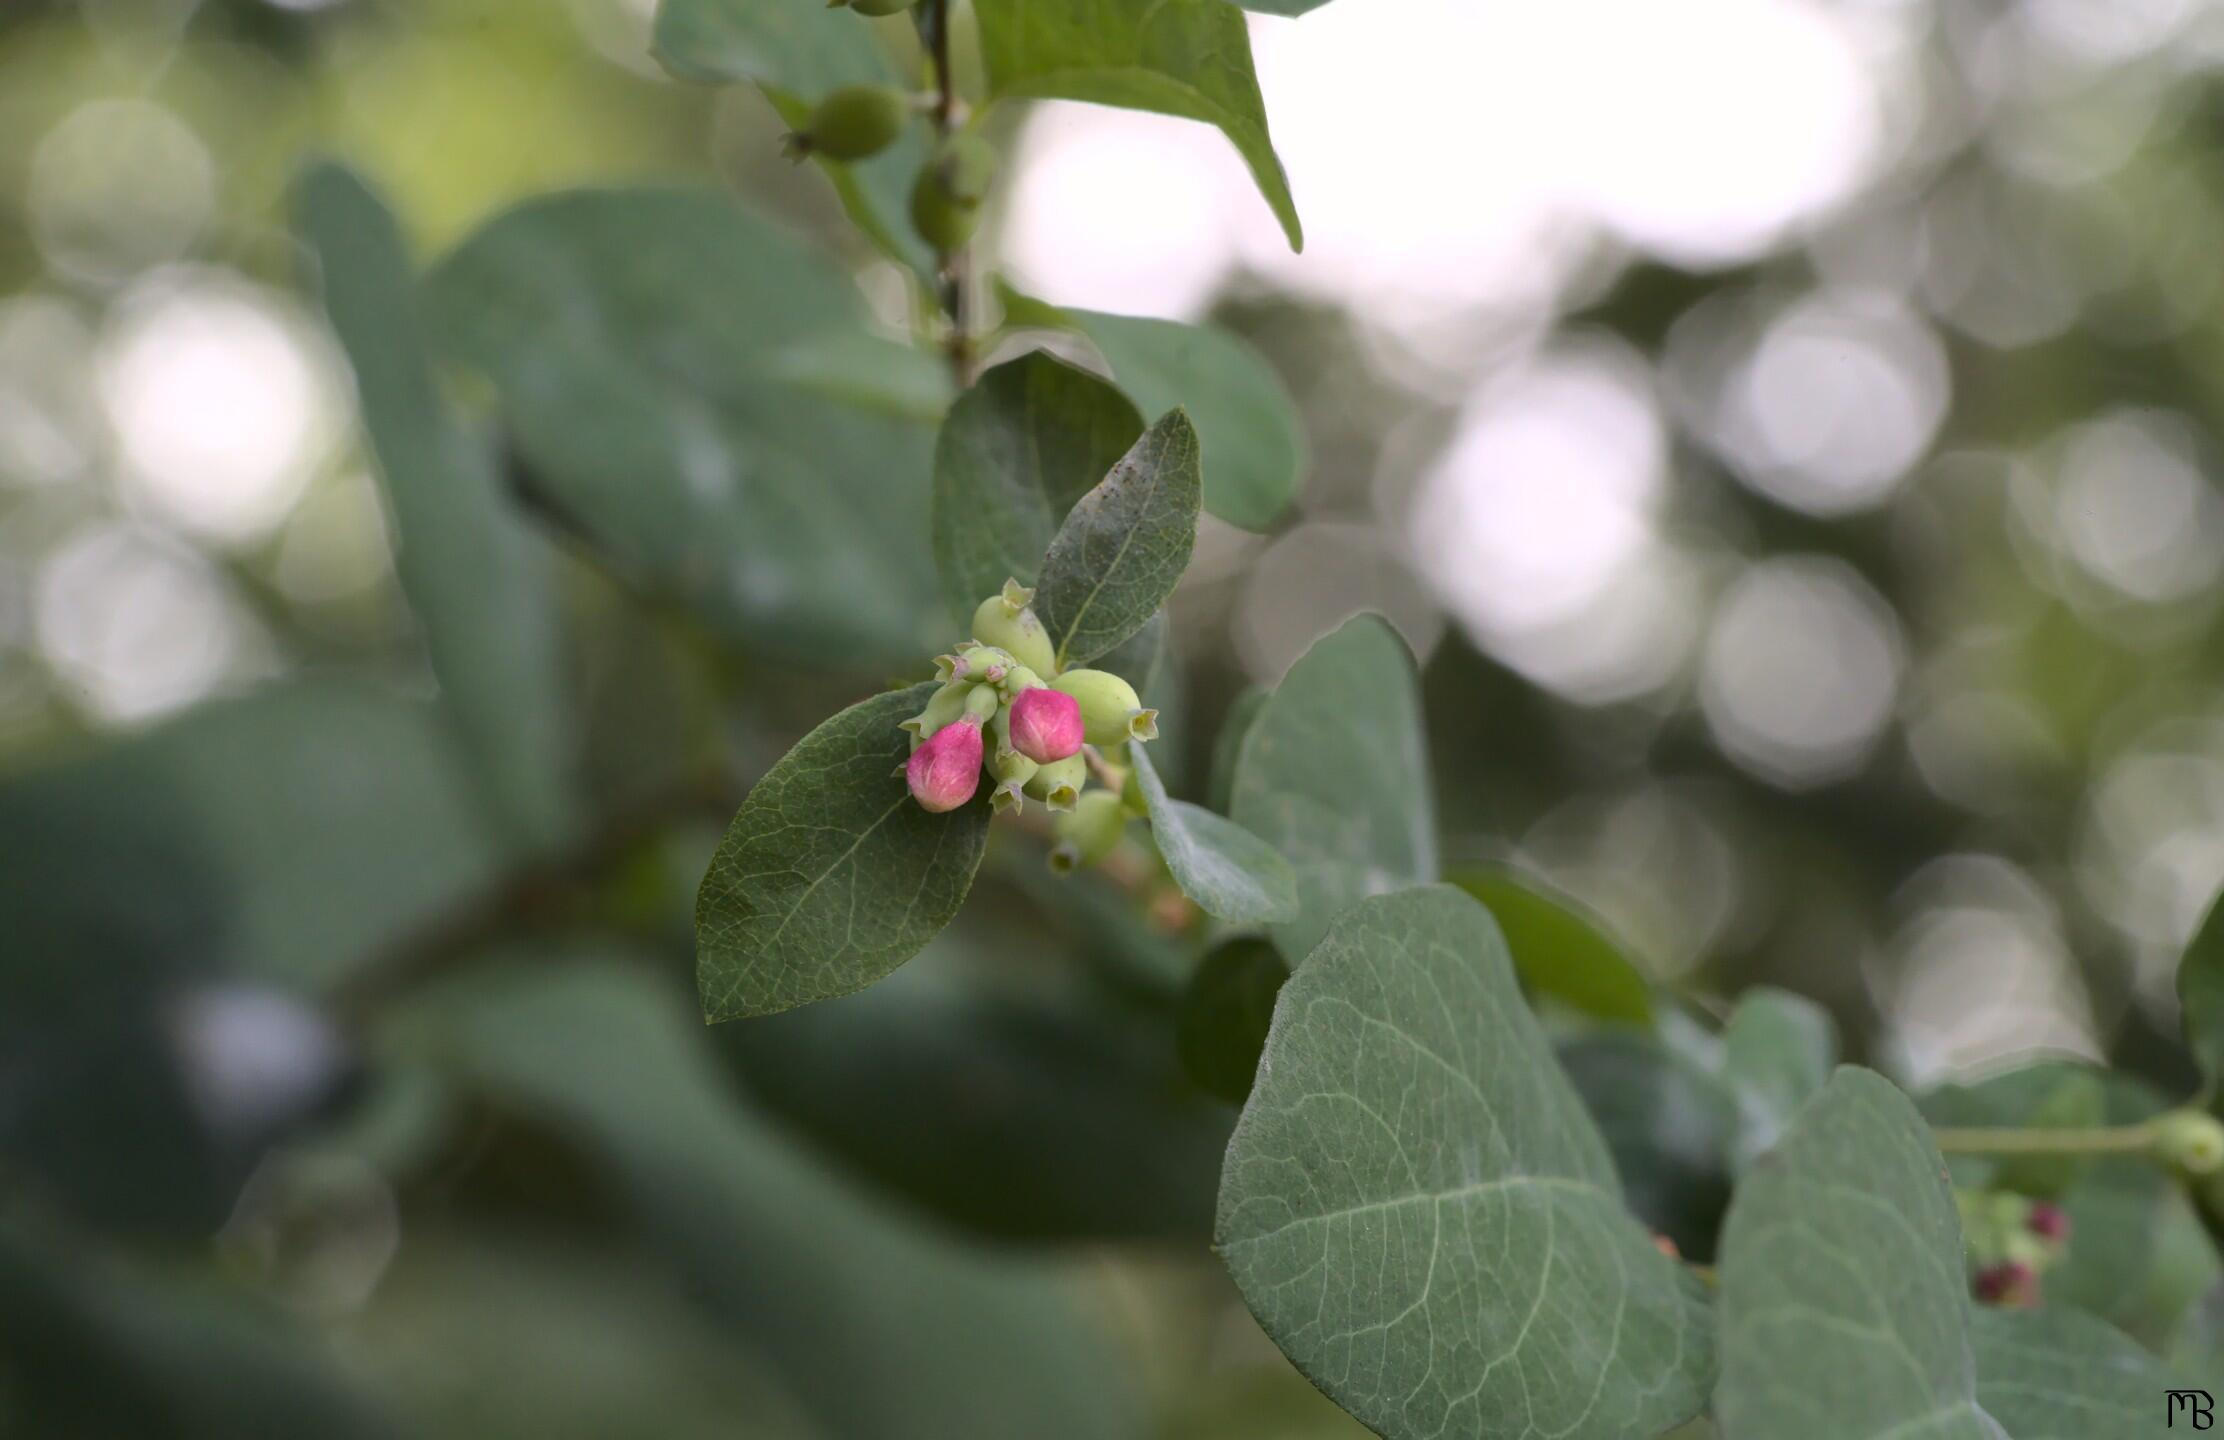 Little red flower buds in bush